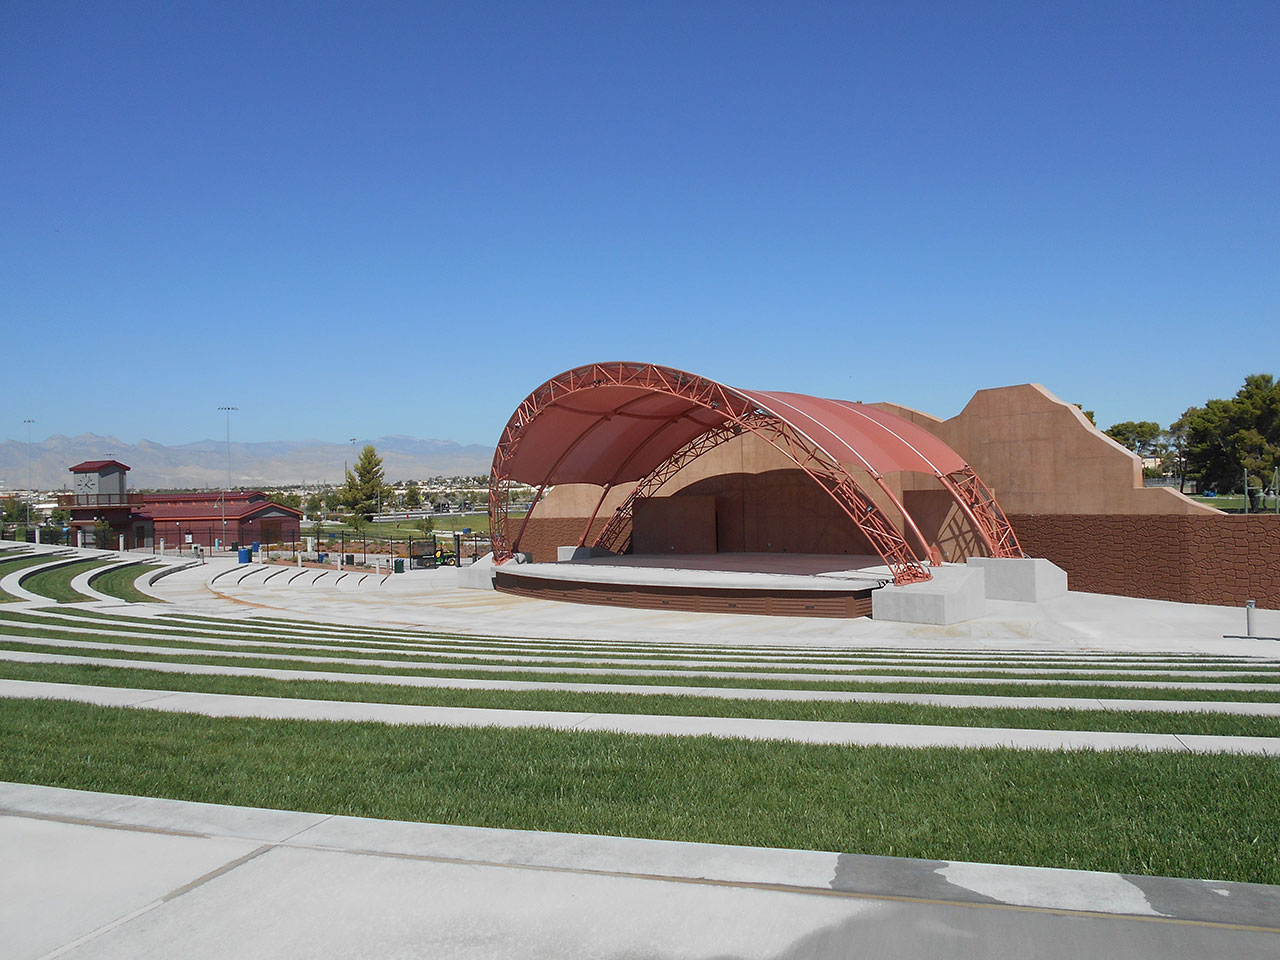 Craig Ranch Amphitheater